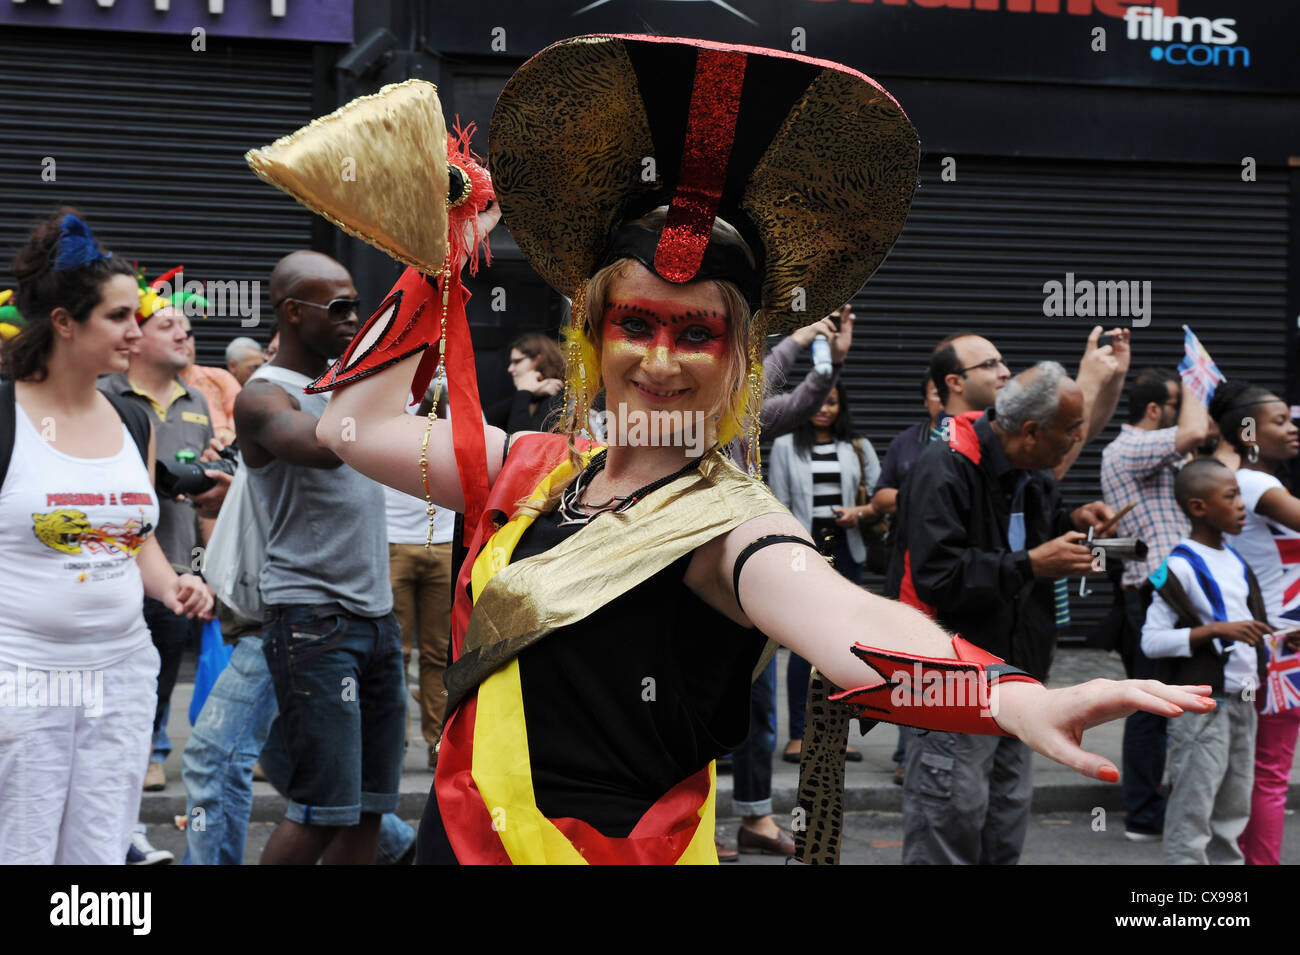 Woman in the parade at Notting Hill Carnival on Monday 27th August 2012. - Stock Image